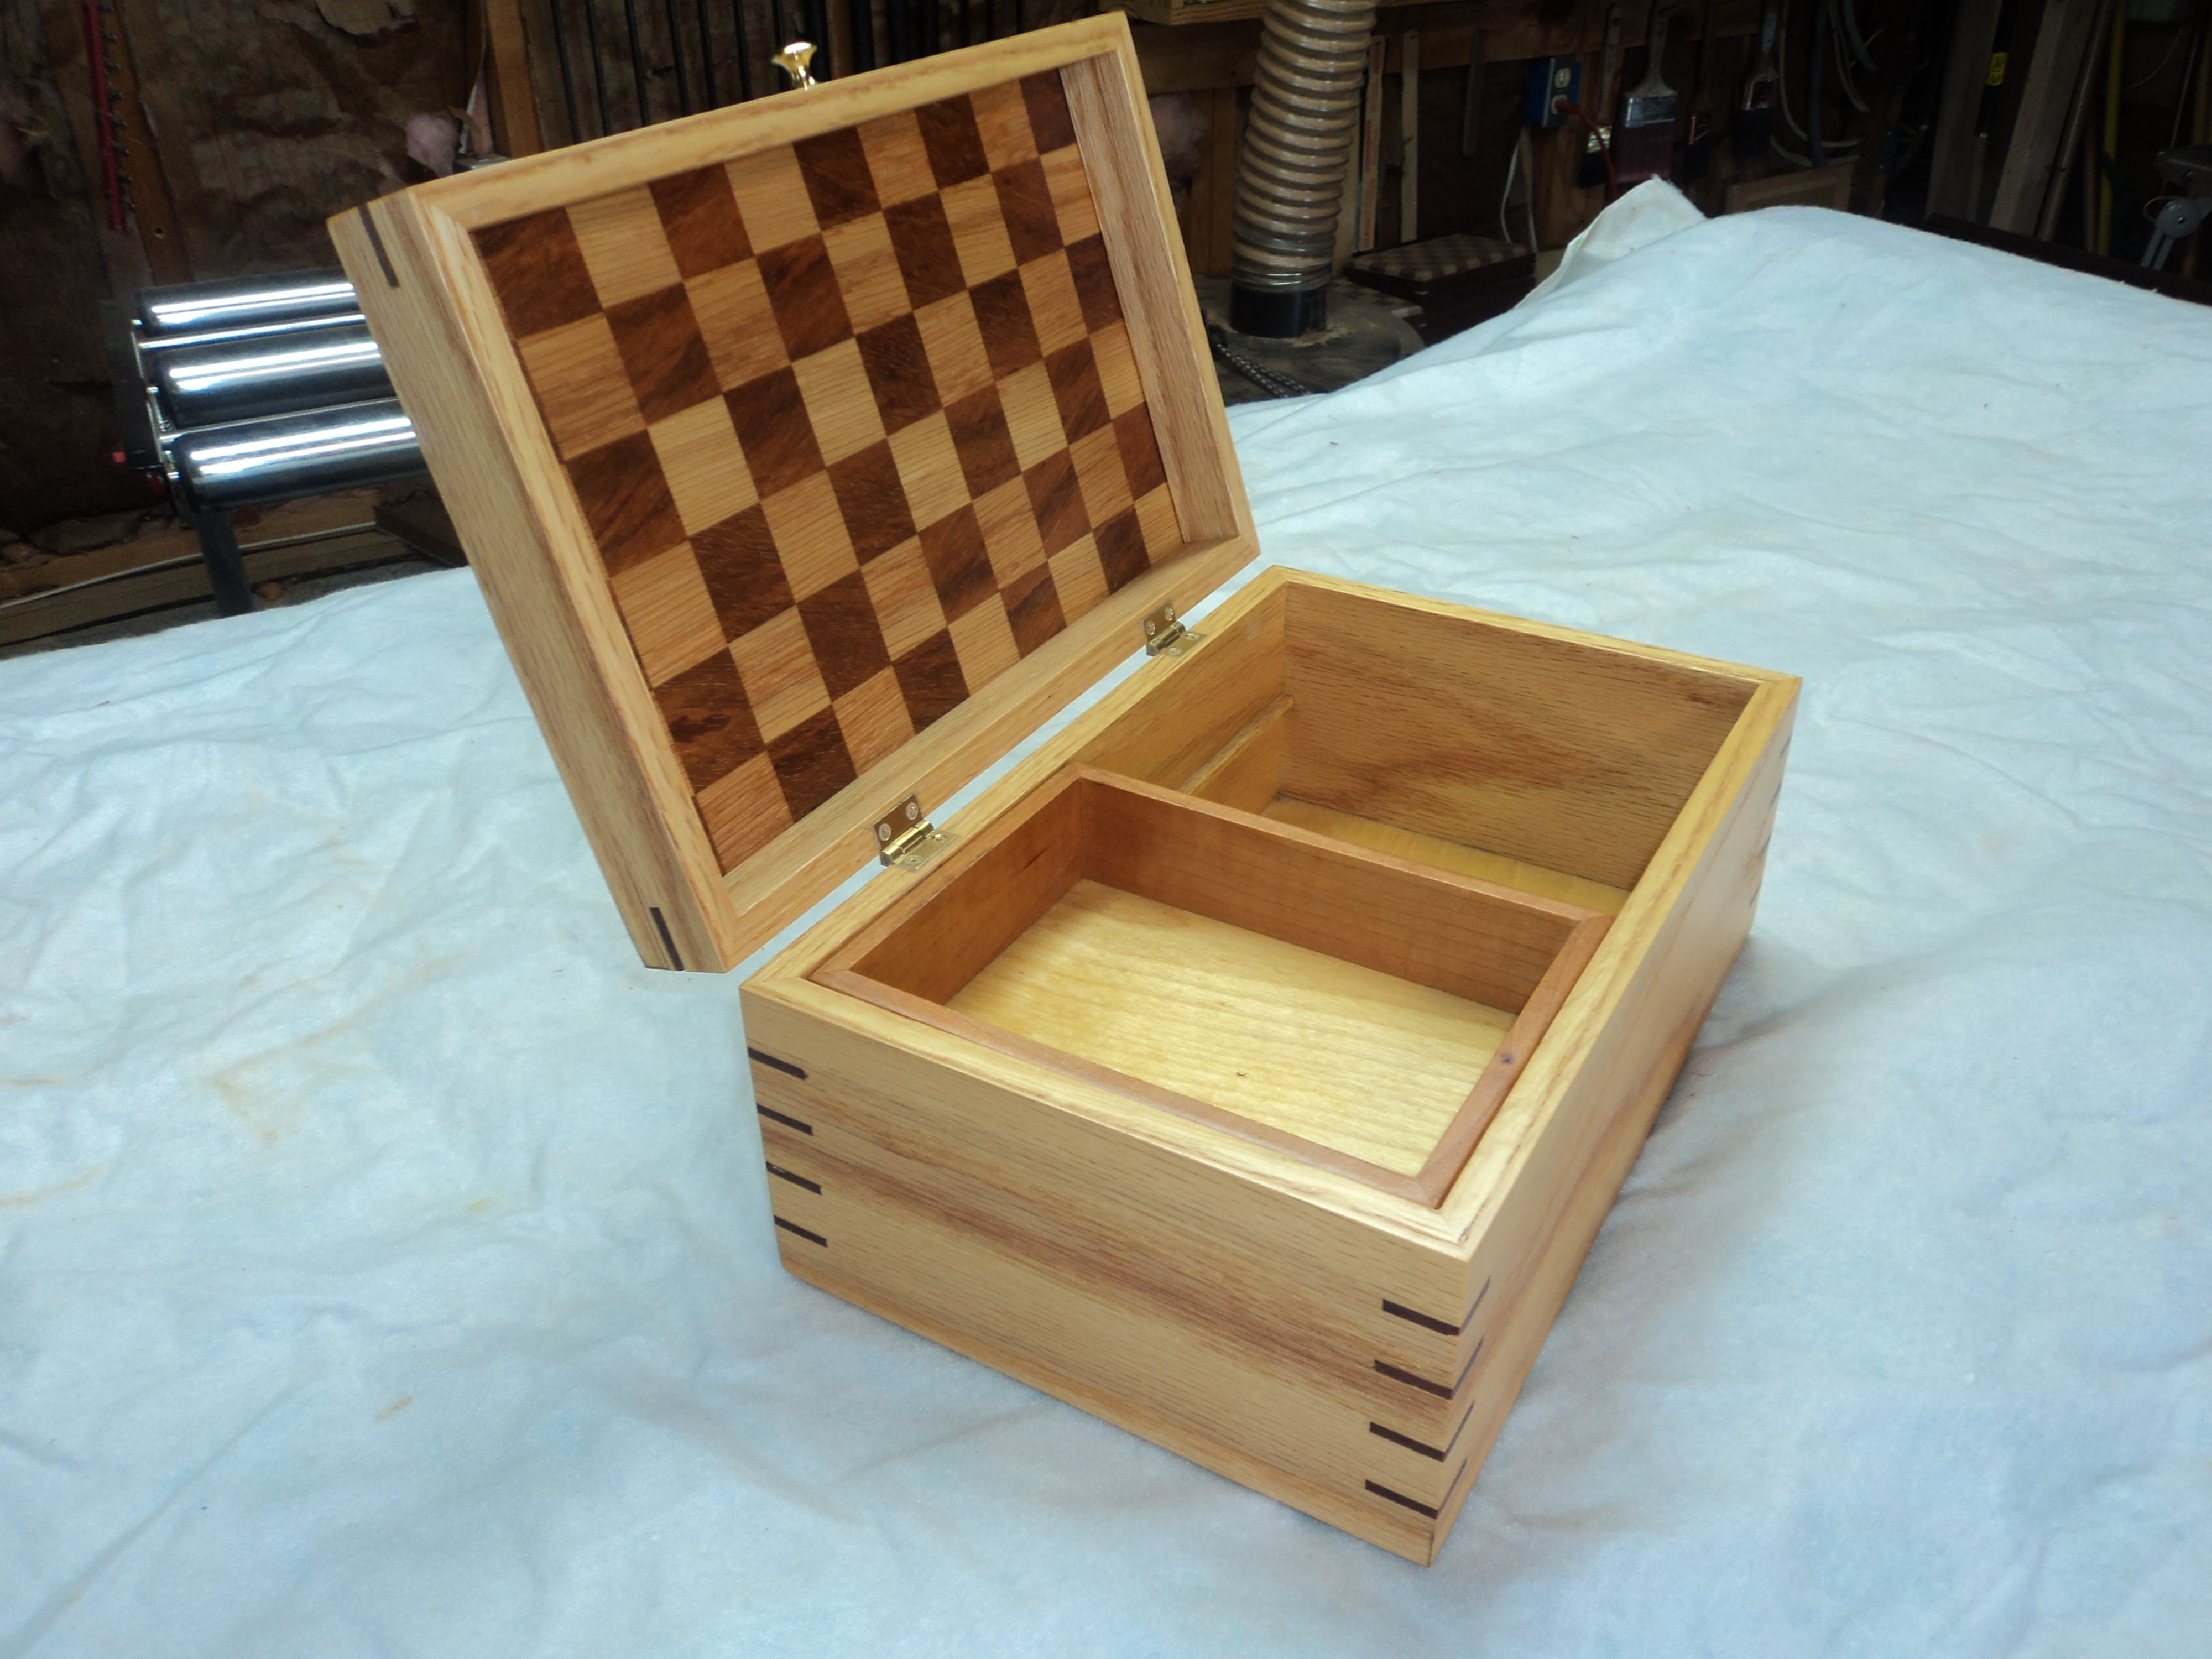 How To Build Cool Things Out Of Wood Wooden PDF Build With